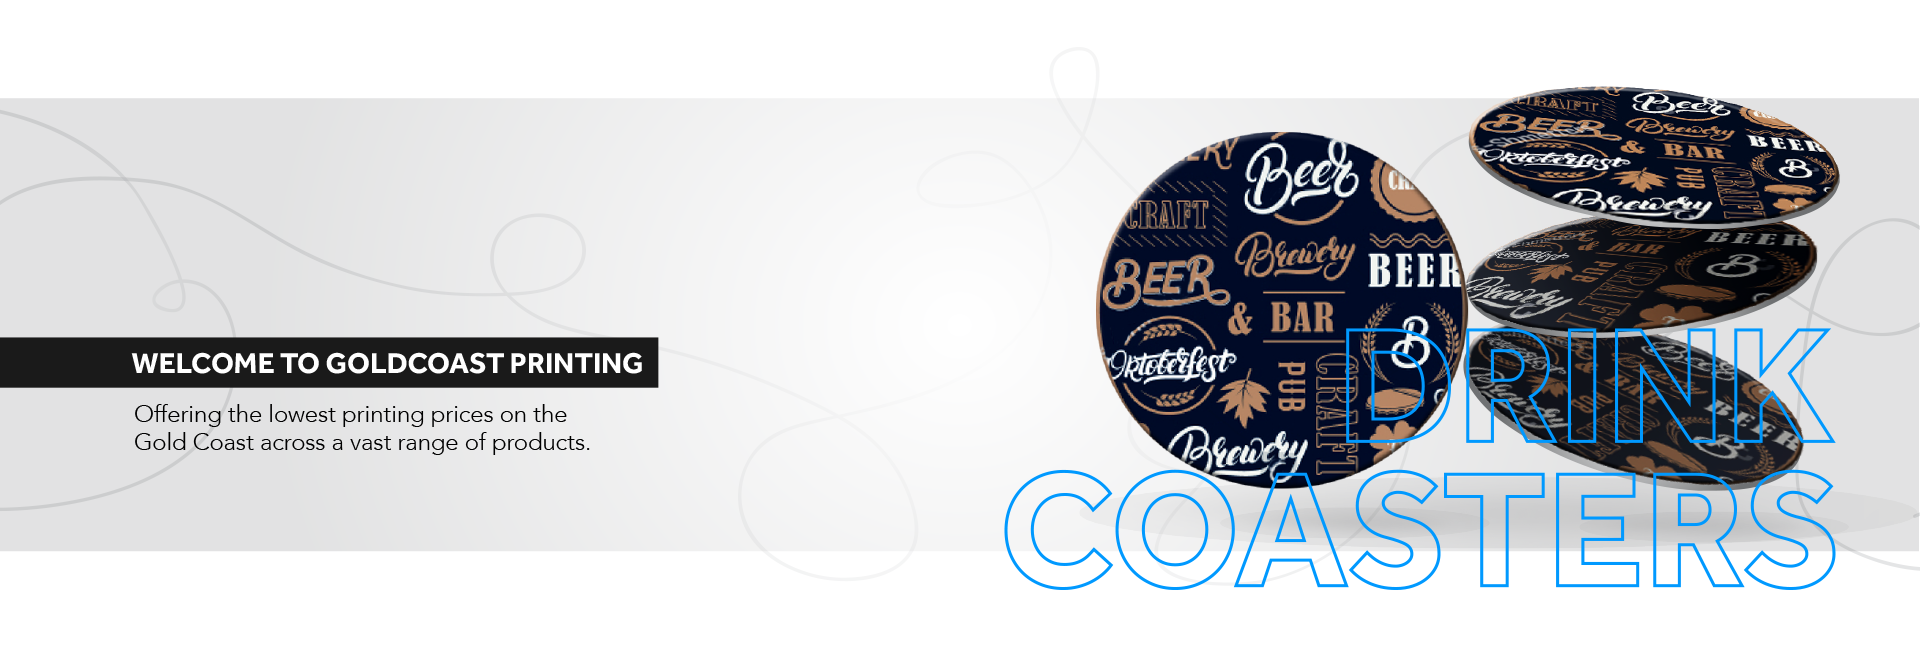 Banner Coasters